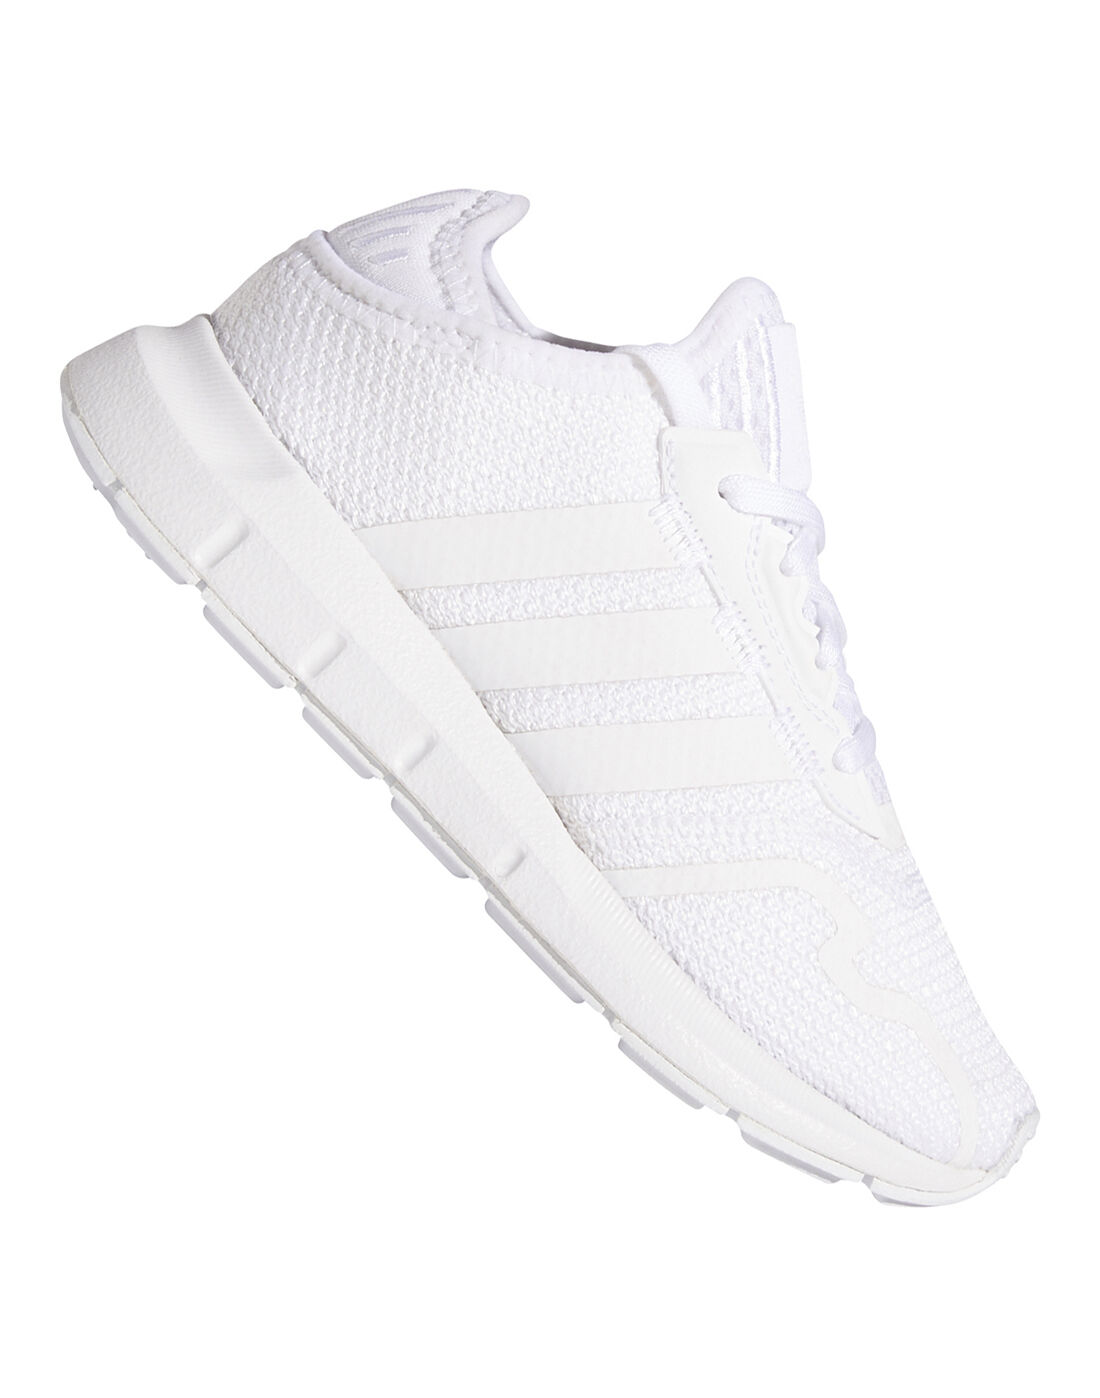 adidas Originals build your own adidas shoe rack size uae price | Younger Kids Swift Run